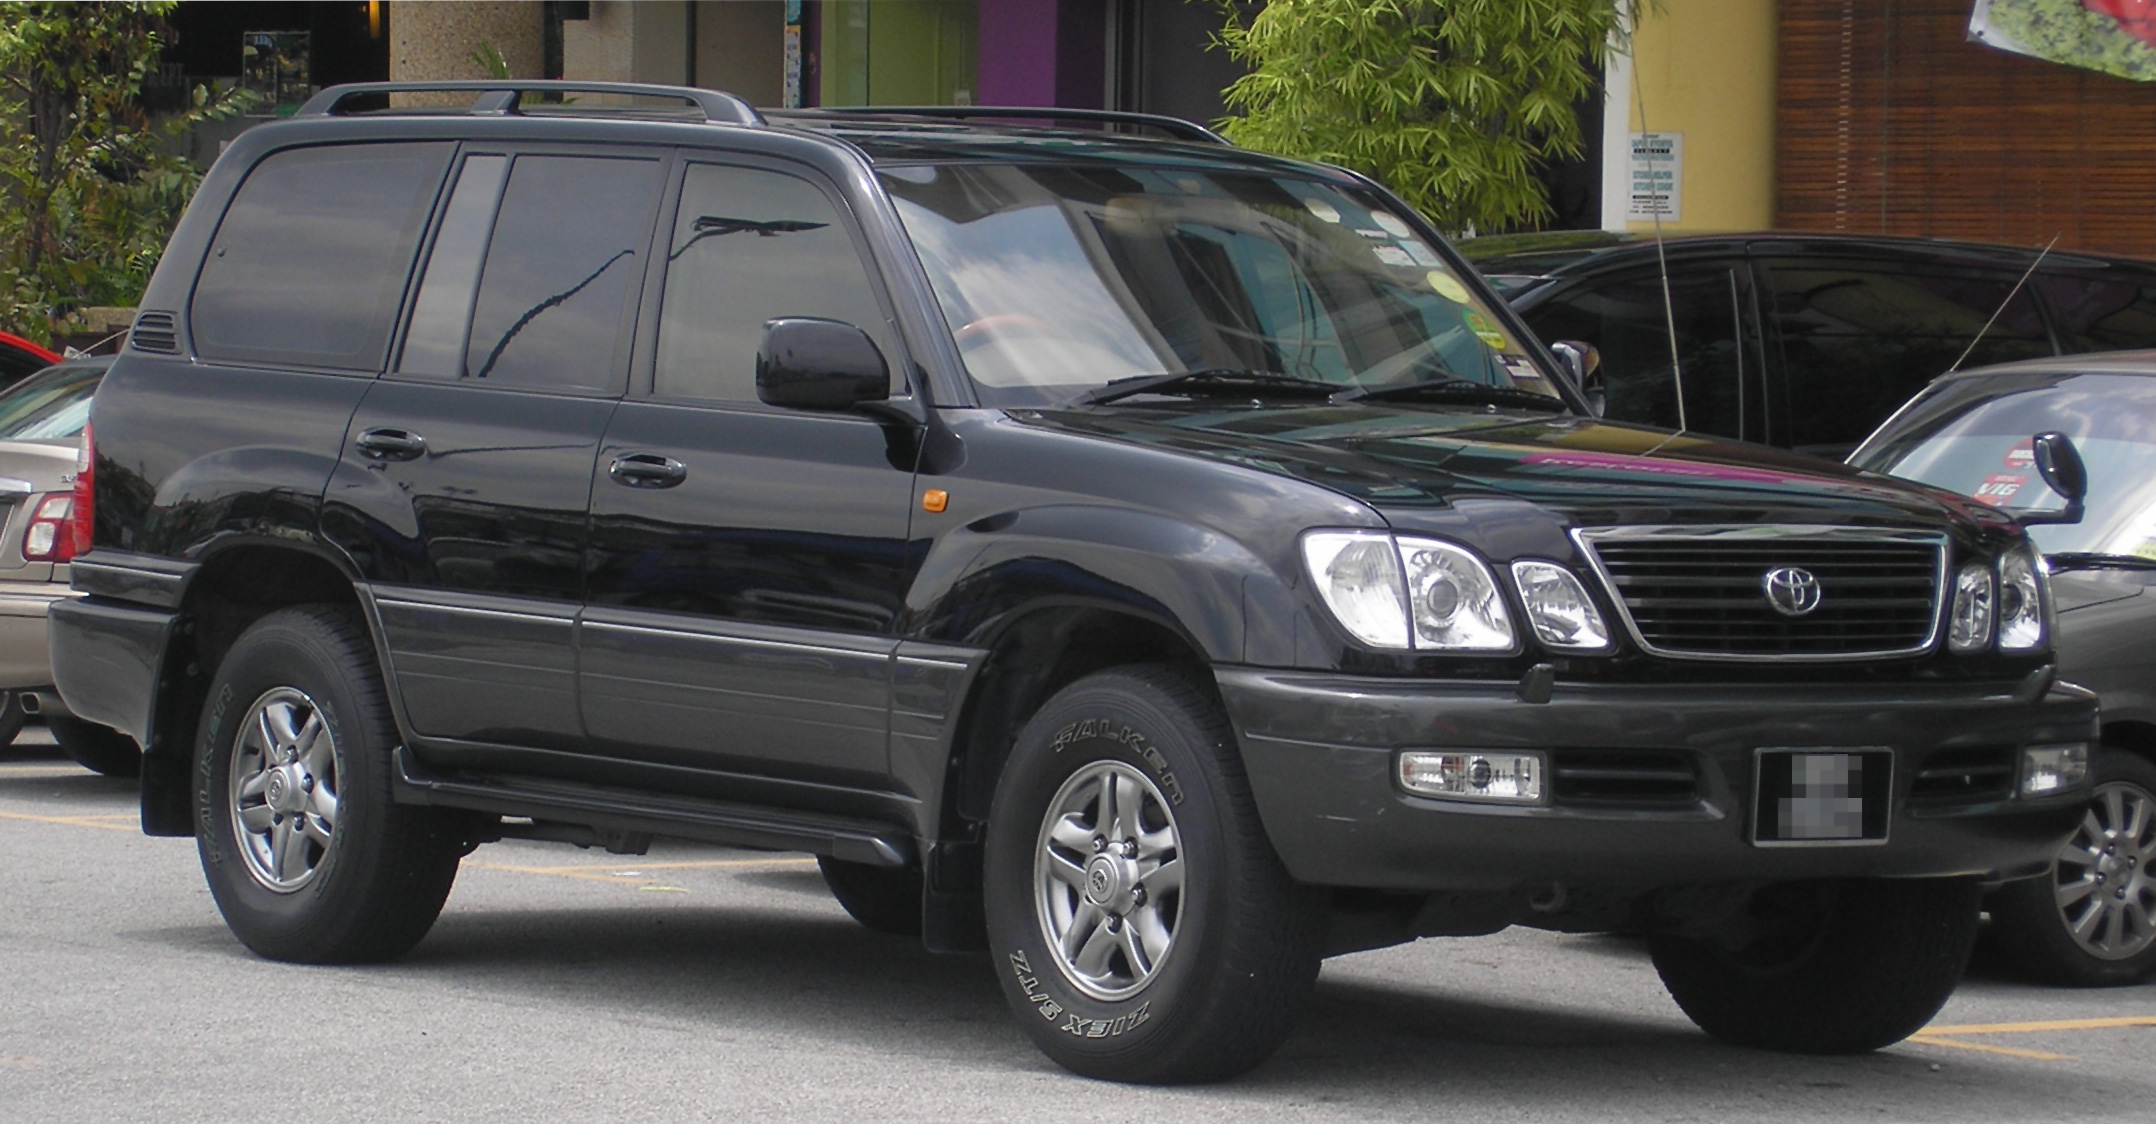 File:Toyota Land Cruiser (eighth Generation) (100 Cygnus) (front)